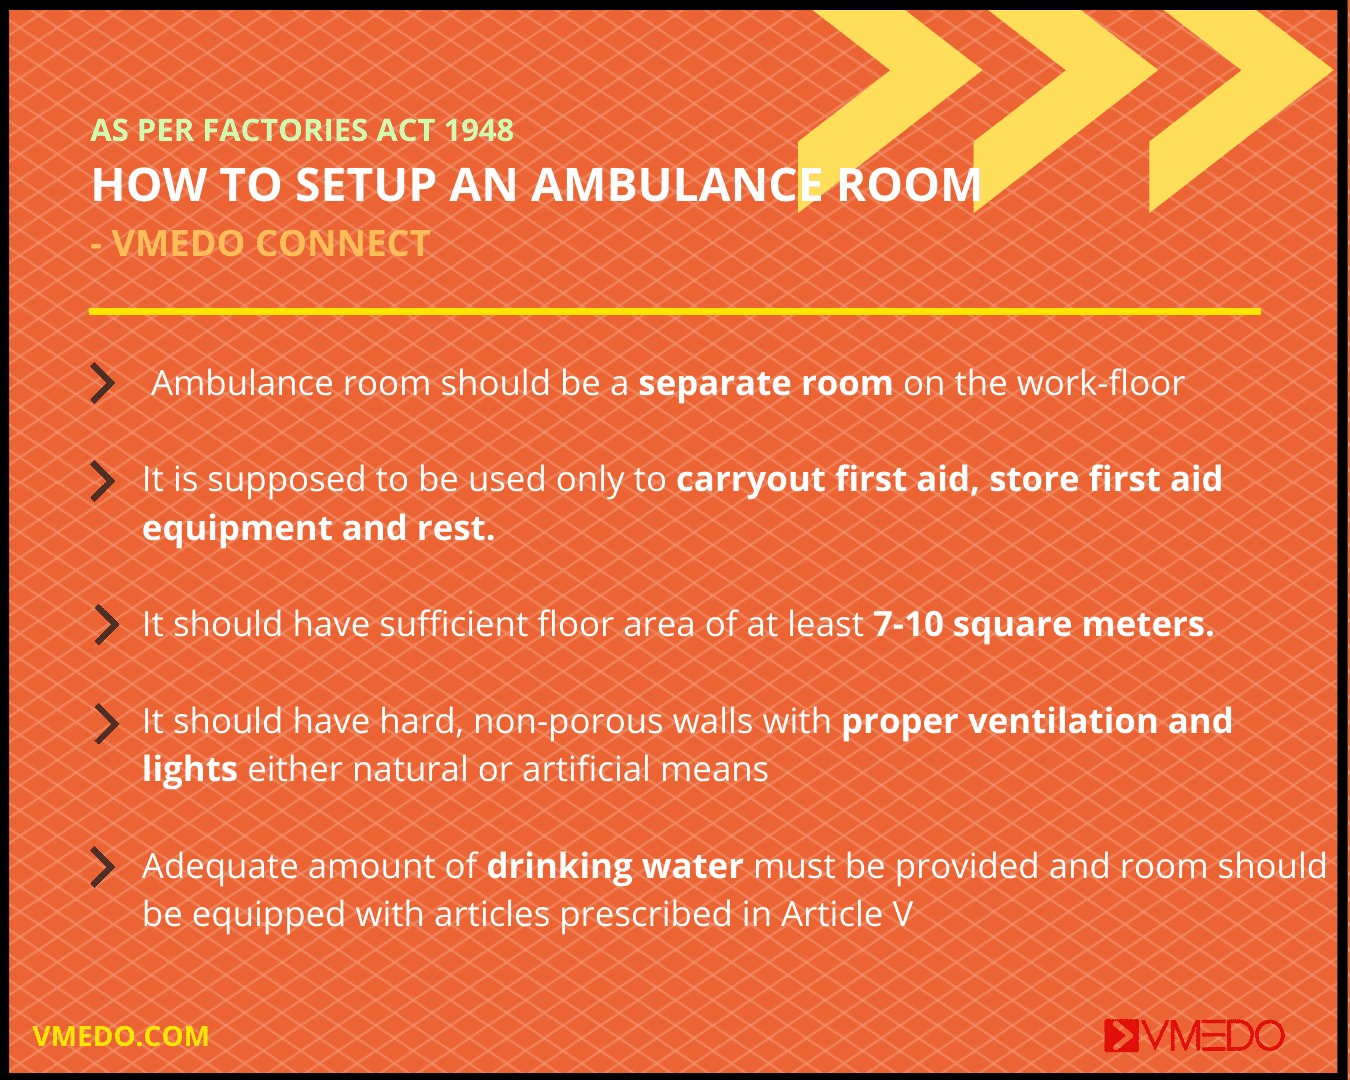 Ambulance room